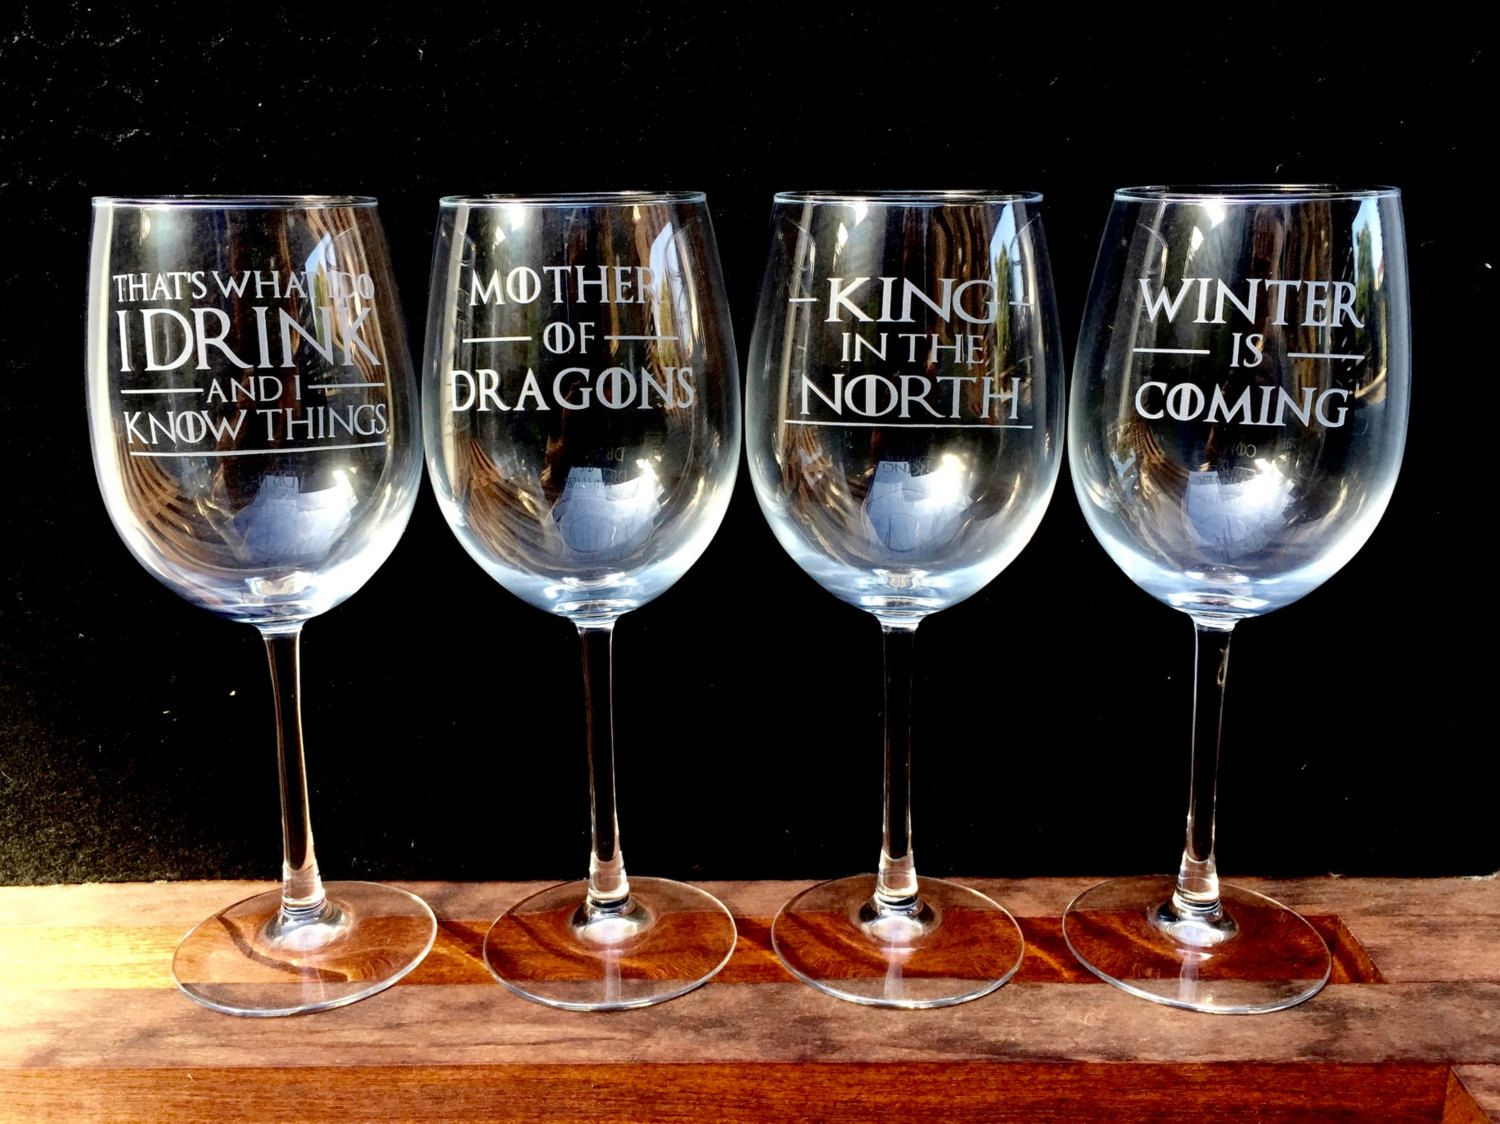 Set of 4 - Wine Glasses Etched - Game of Thrones Quotes, I Drink and I Know…